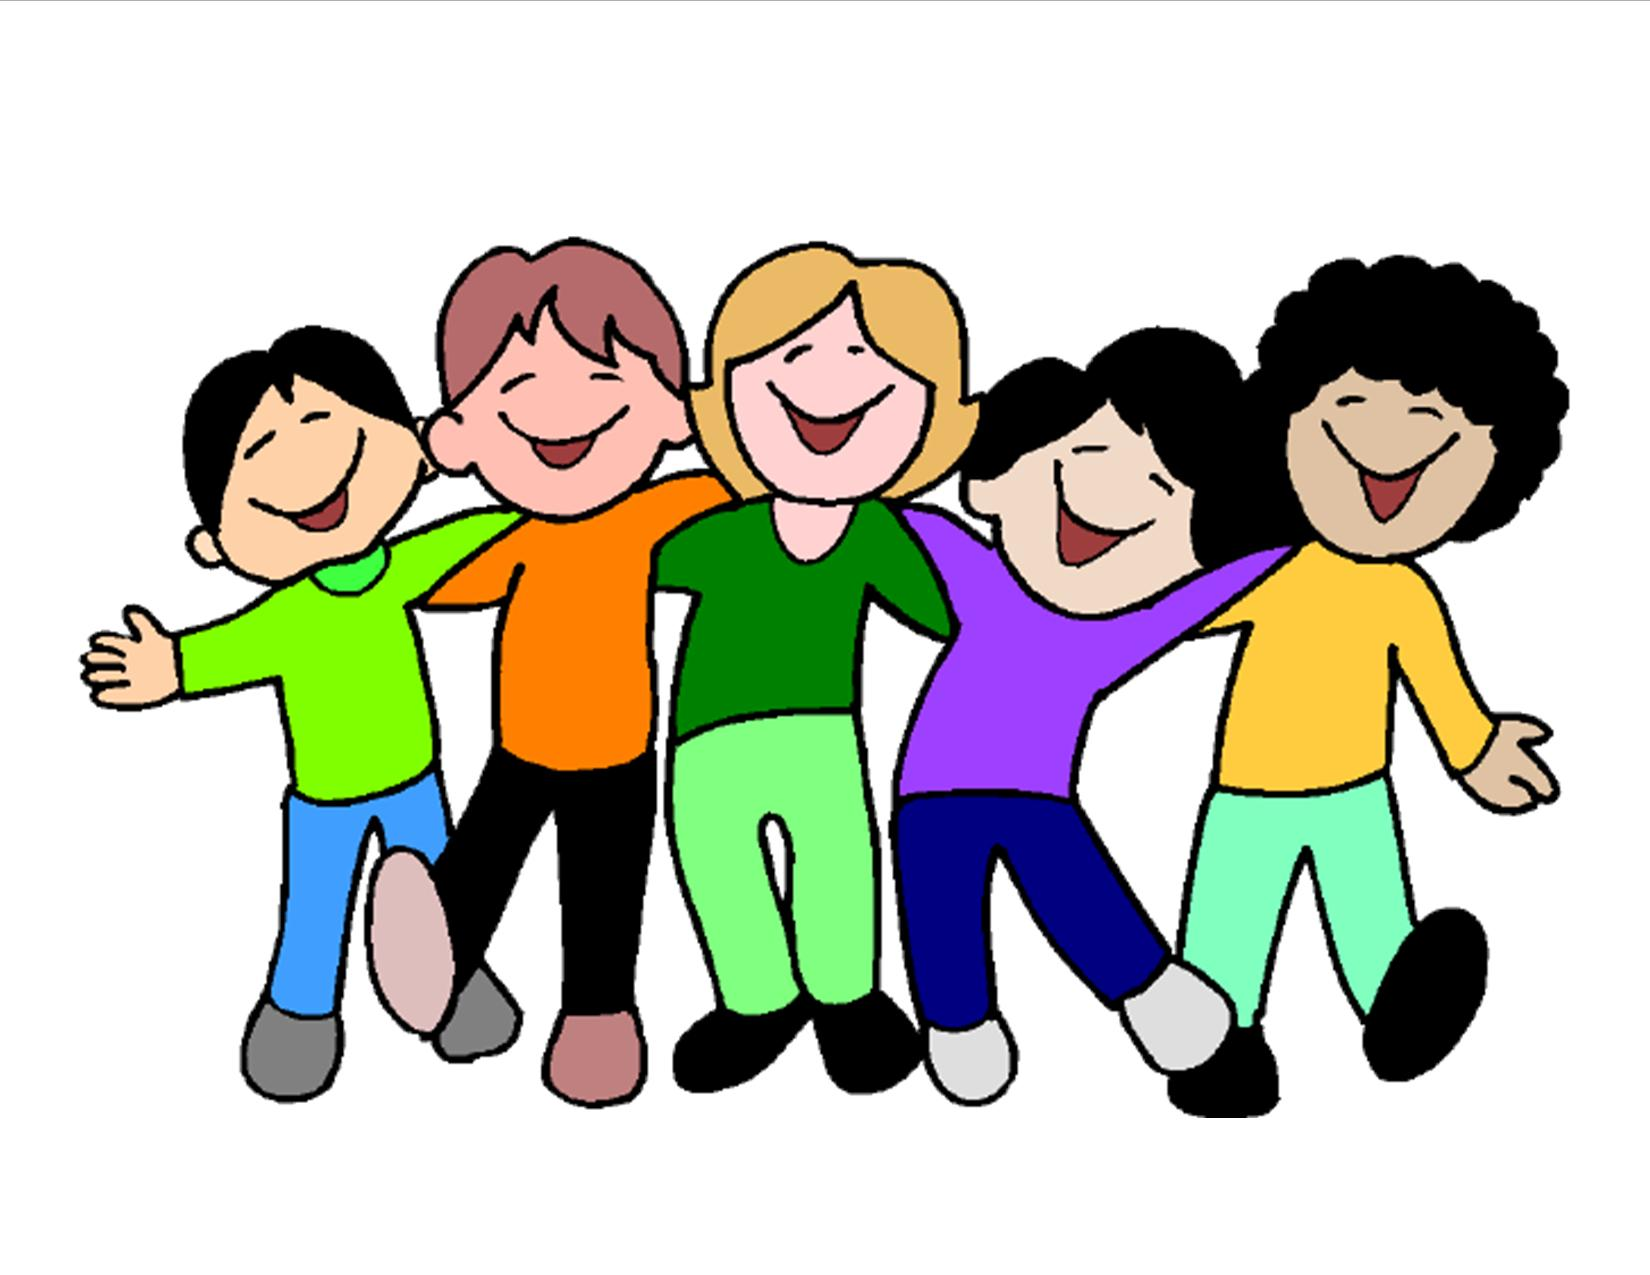 Friendship clipart healthy friendship. Free friendships cliparts download